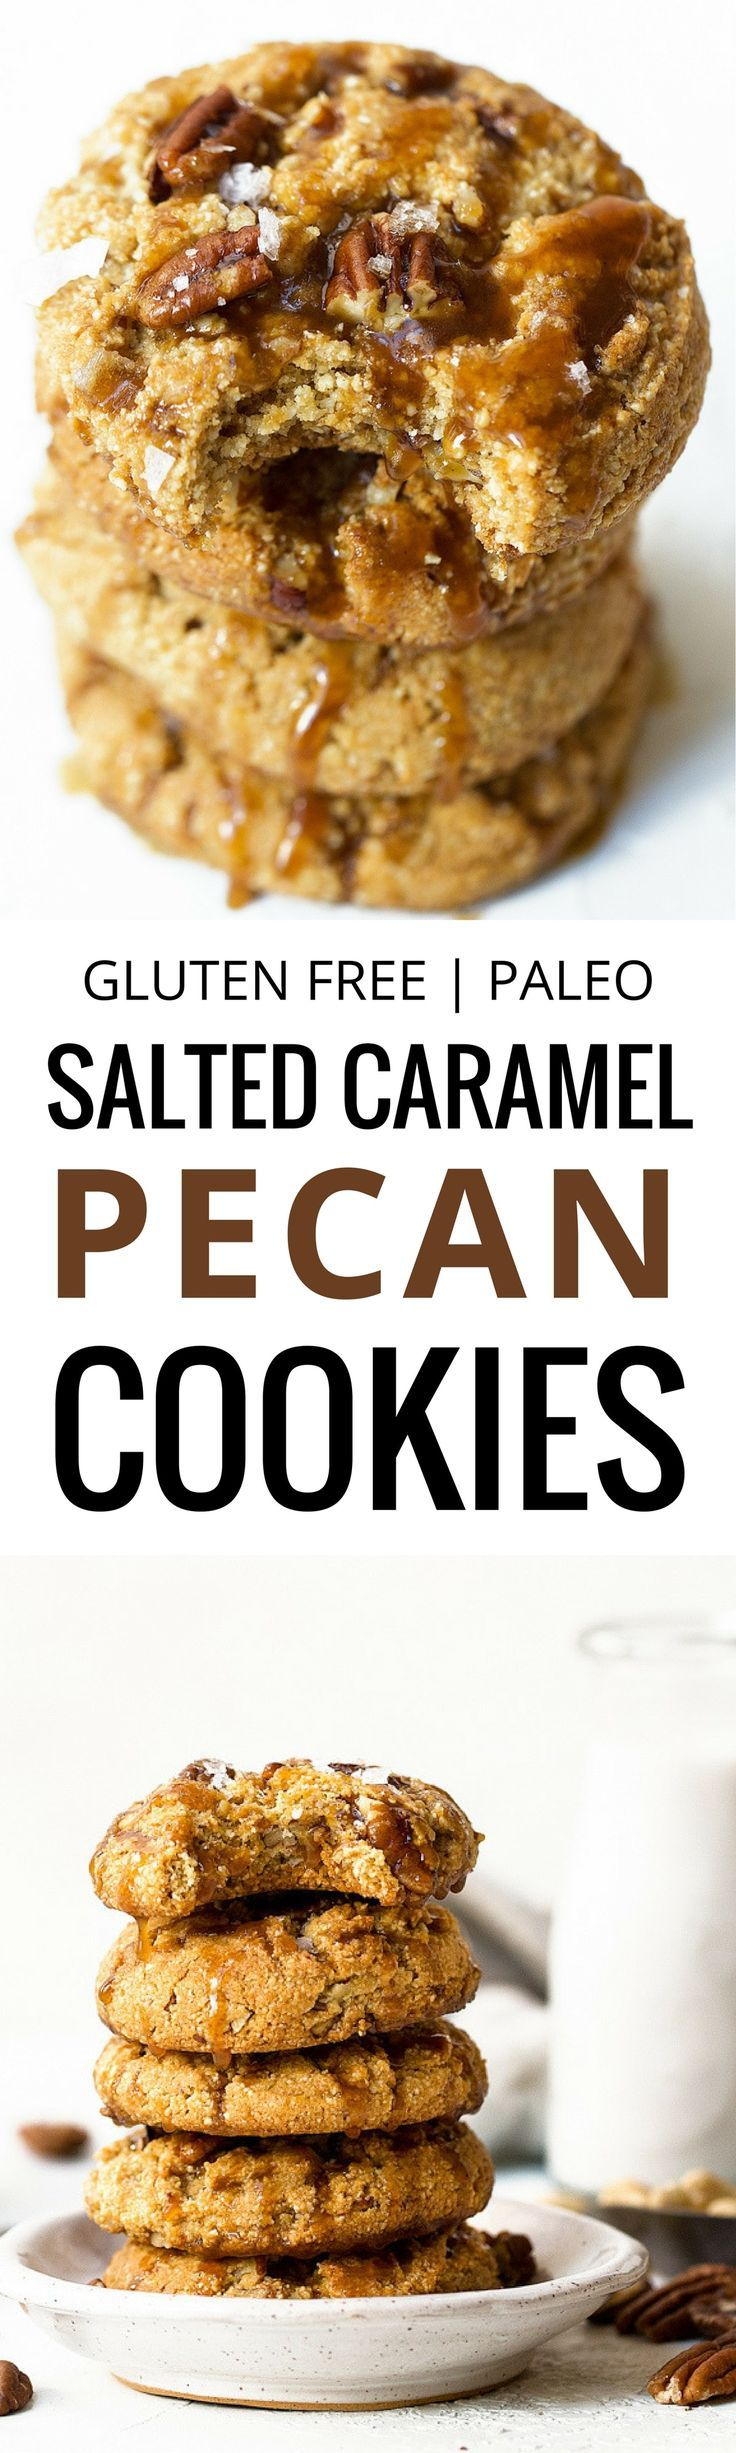 Salted caramel pecan cookies made with raw cashews, bursting with added protein from collagen peptides & topped off with homemade vegan caramel sauce. These easy paleo cookies are the perfect treat for you and your friends and family. Paleo pecan cookies. Paleo caramel pecan cookies. Gluten free pecan cookies.  via @themovementmenu